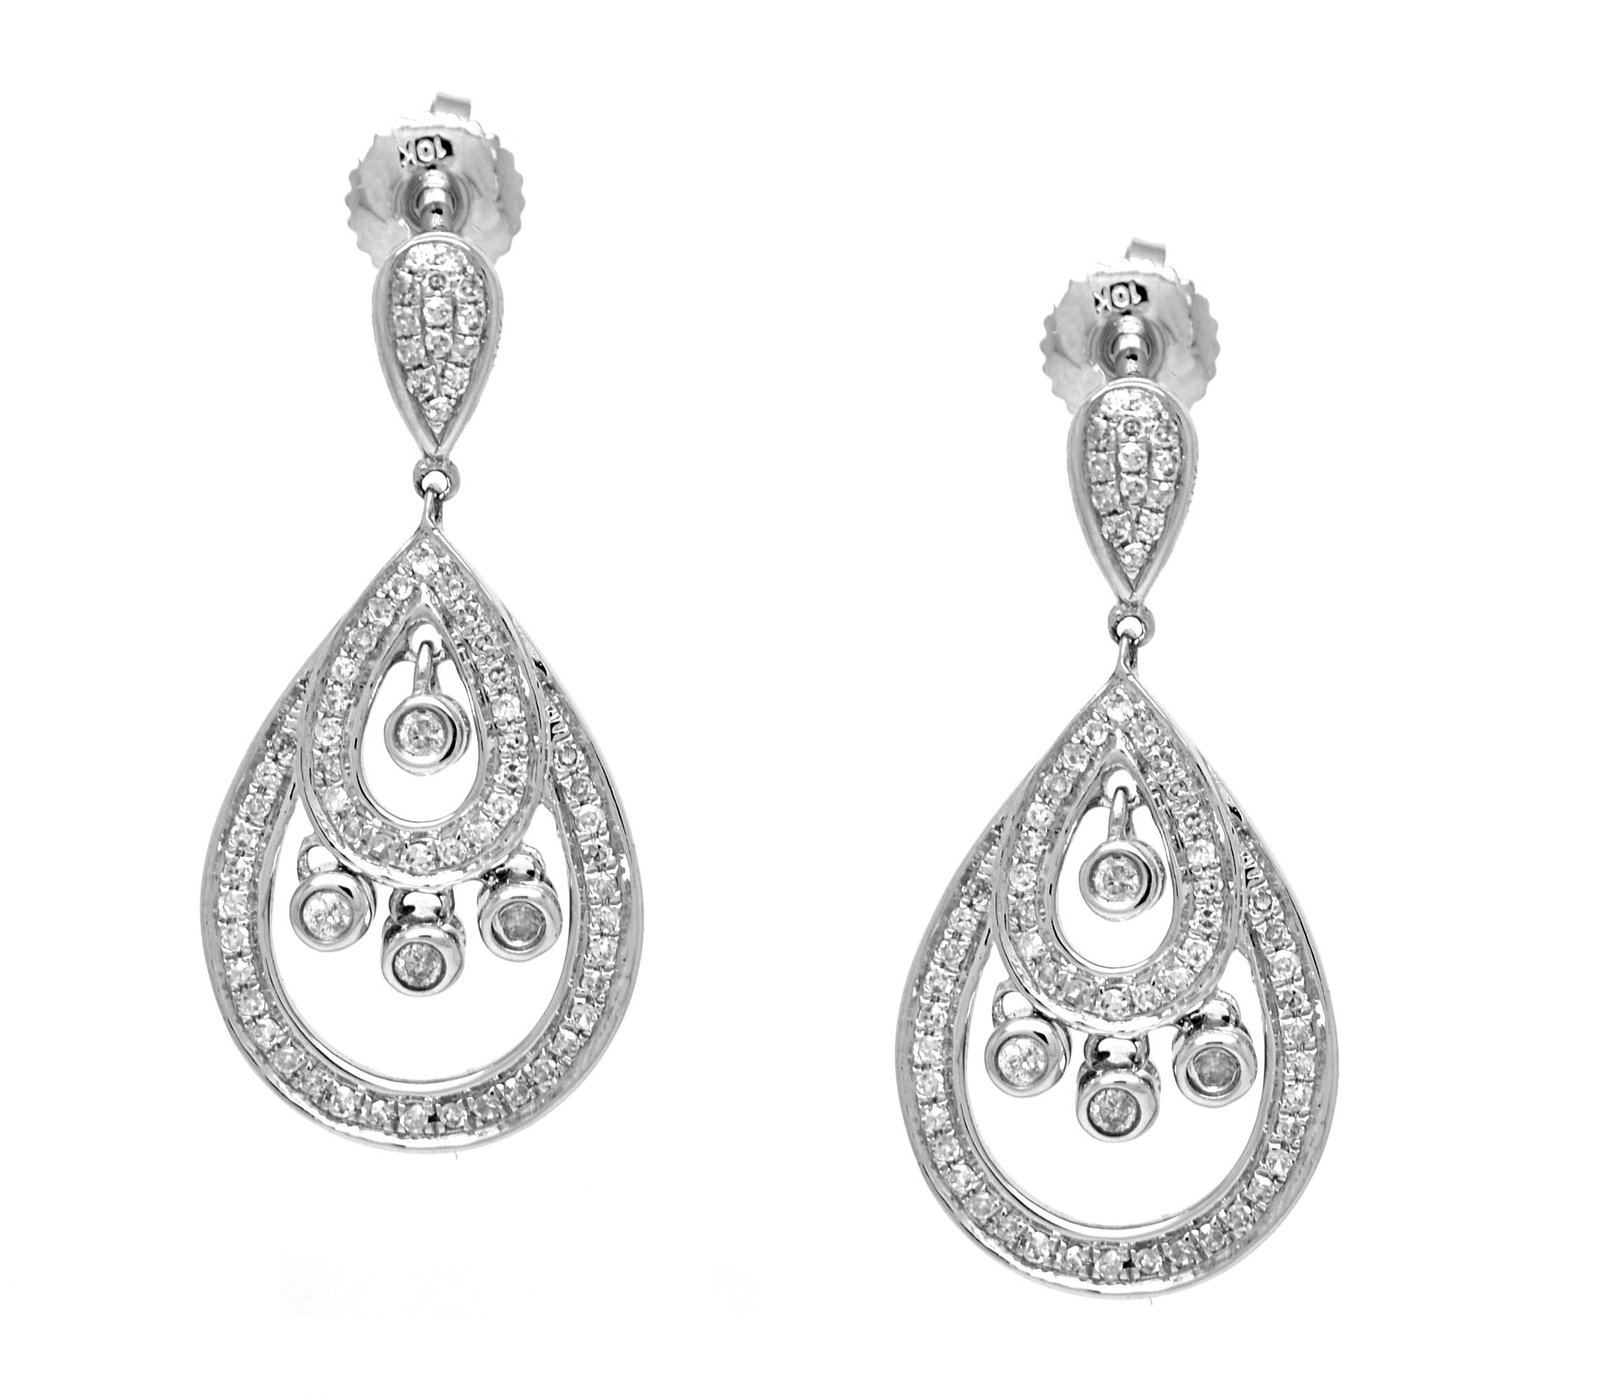 10 K White Gold 0.35 Ct Diamond Dangling Earrings